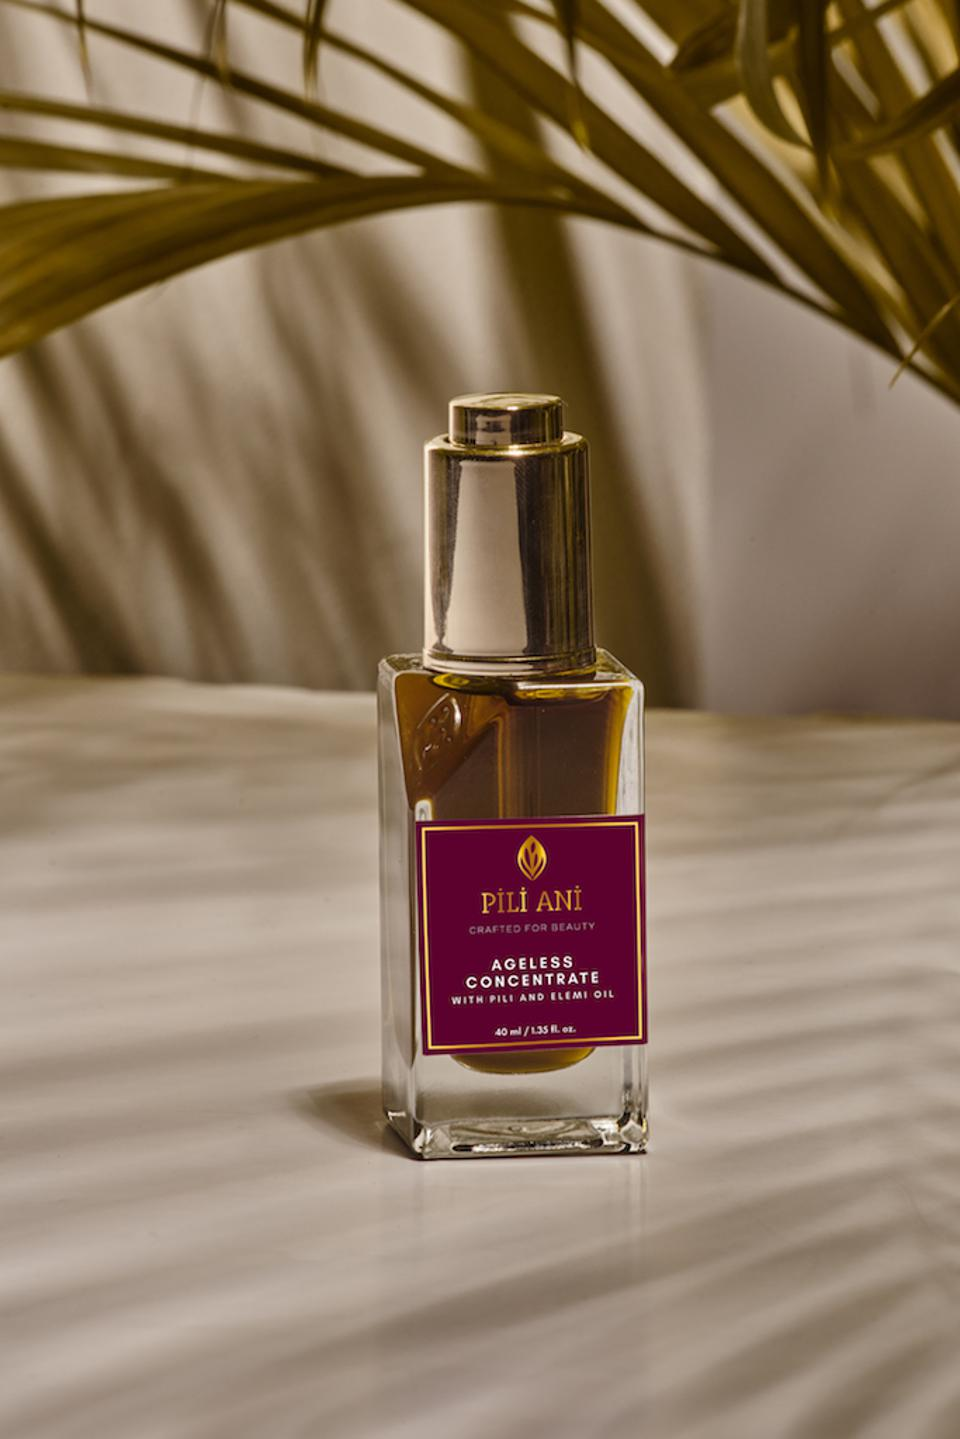 The Ageless Concentrate was lovingly crafted by artisan at Pili Ani to become an essential for any beauty ritual.